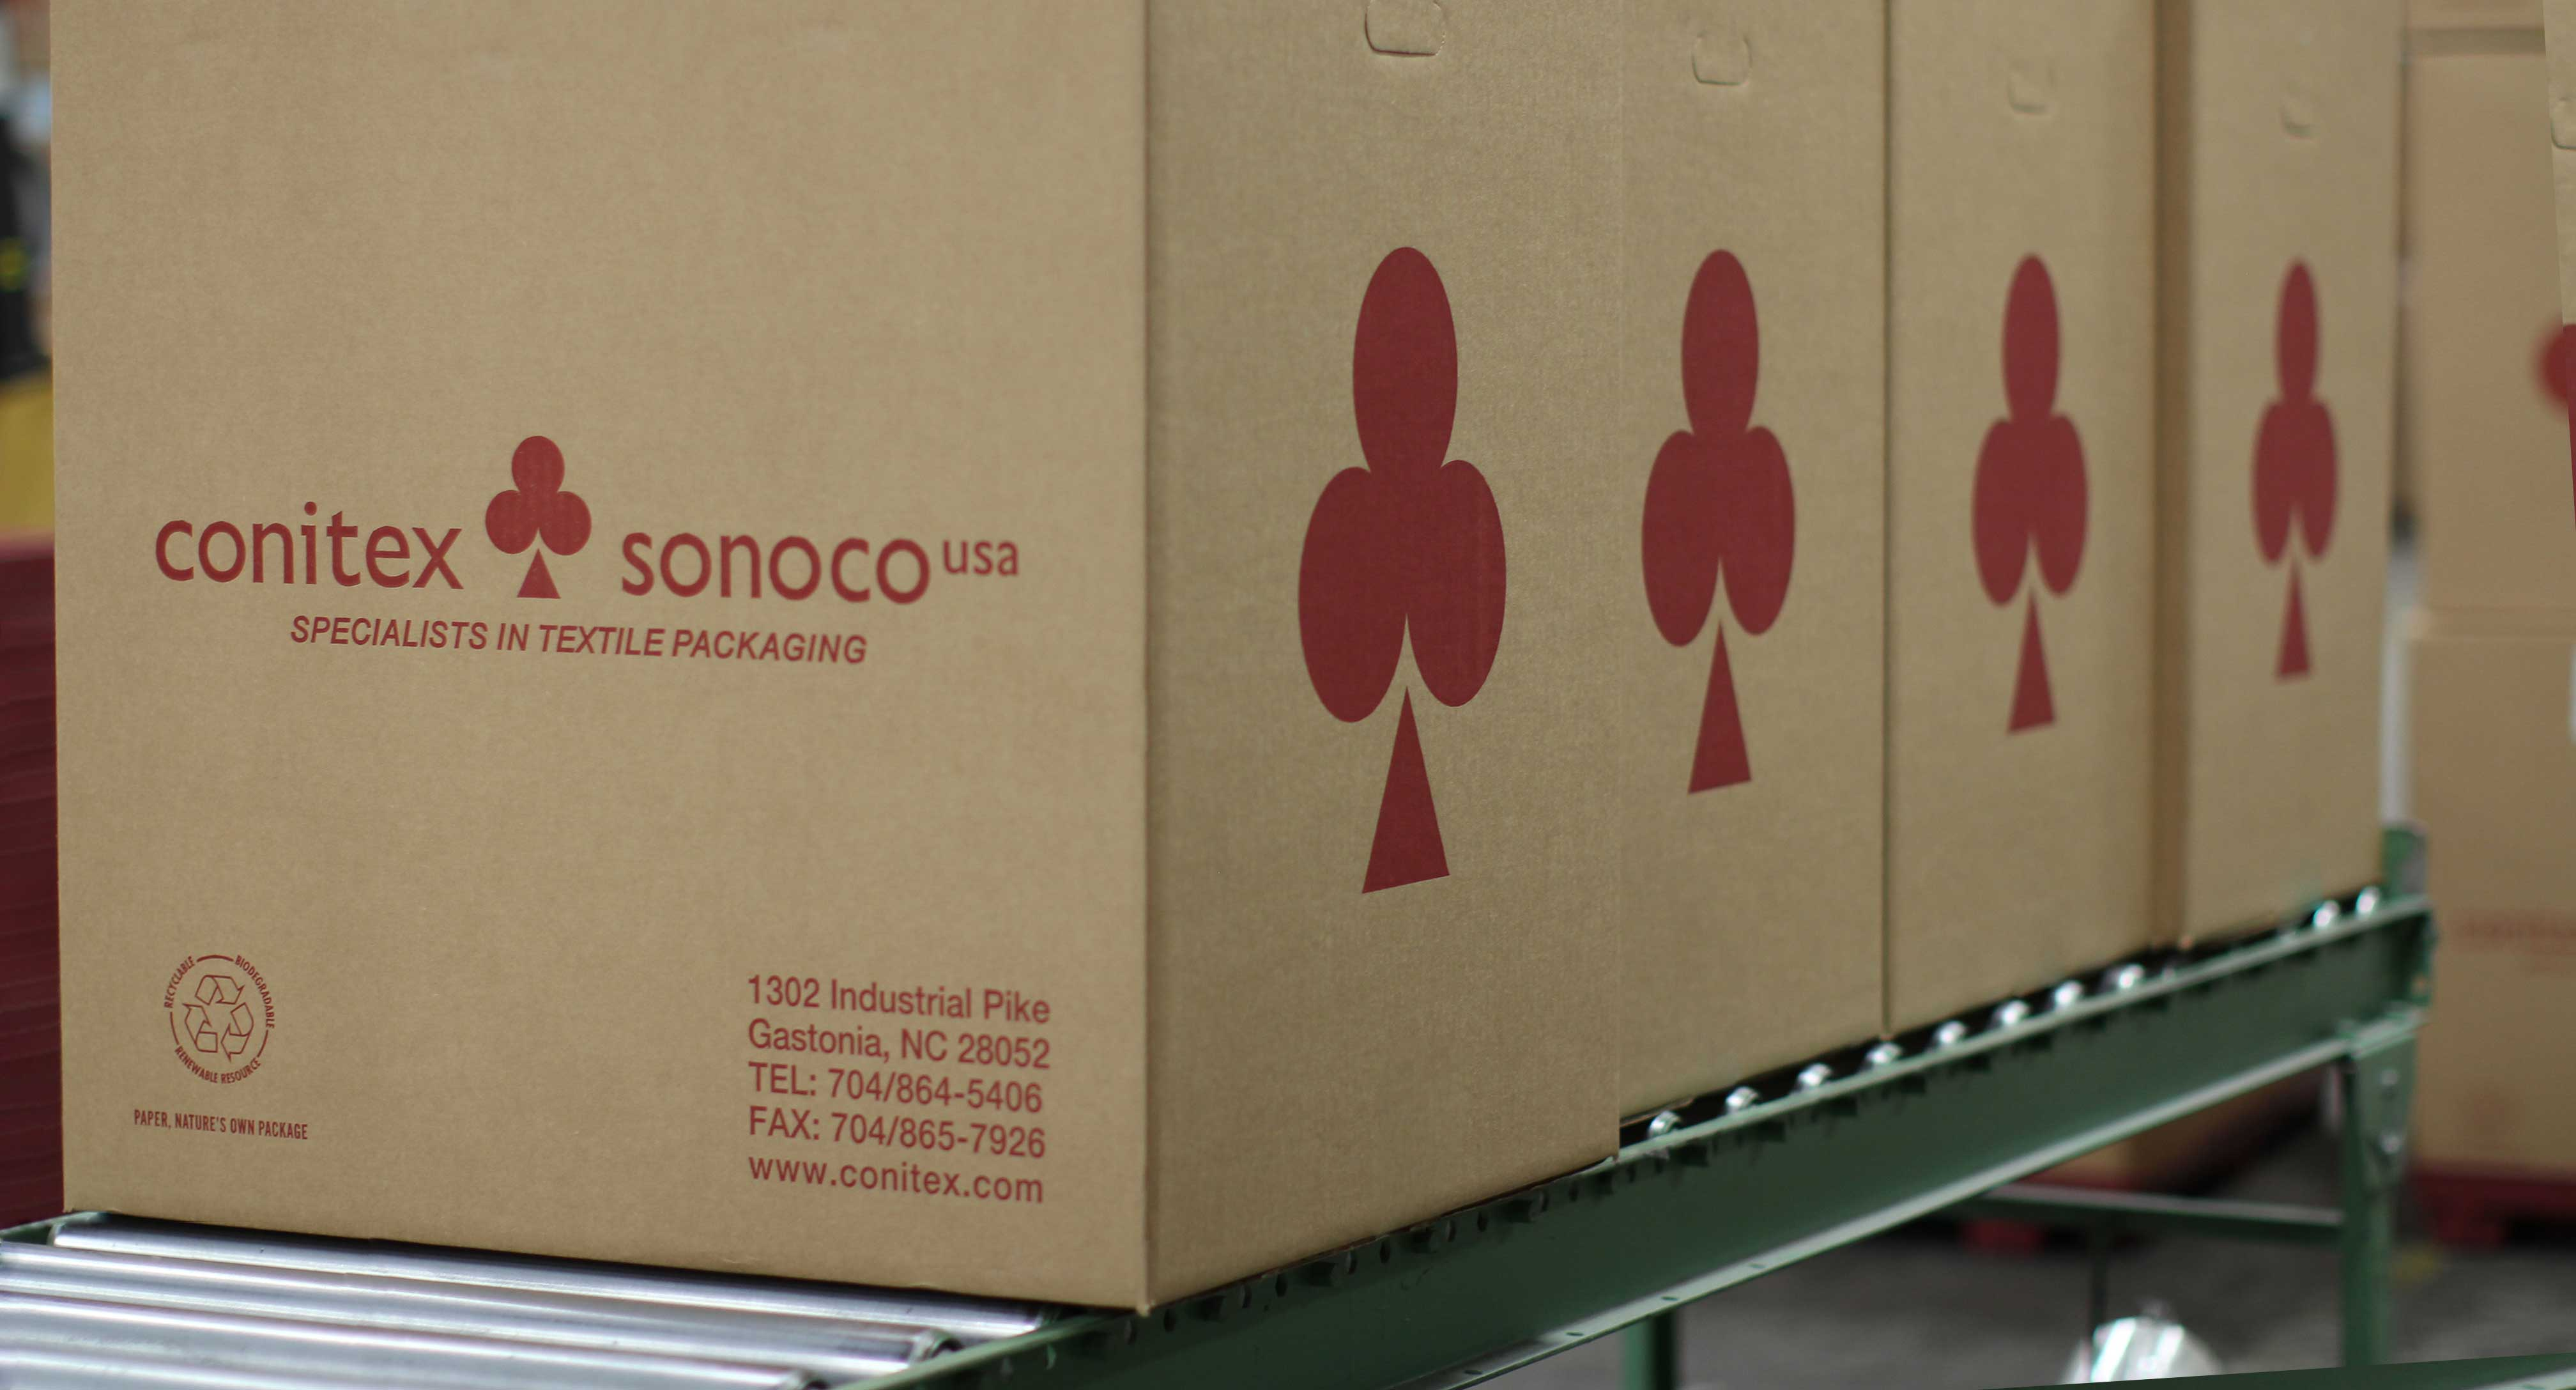 Innovative Packaging Products   Conitex Sonoco   Sustainable Packaging Solutions